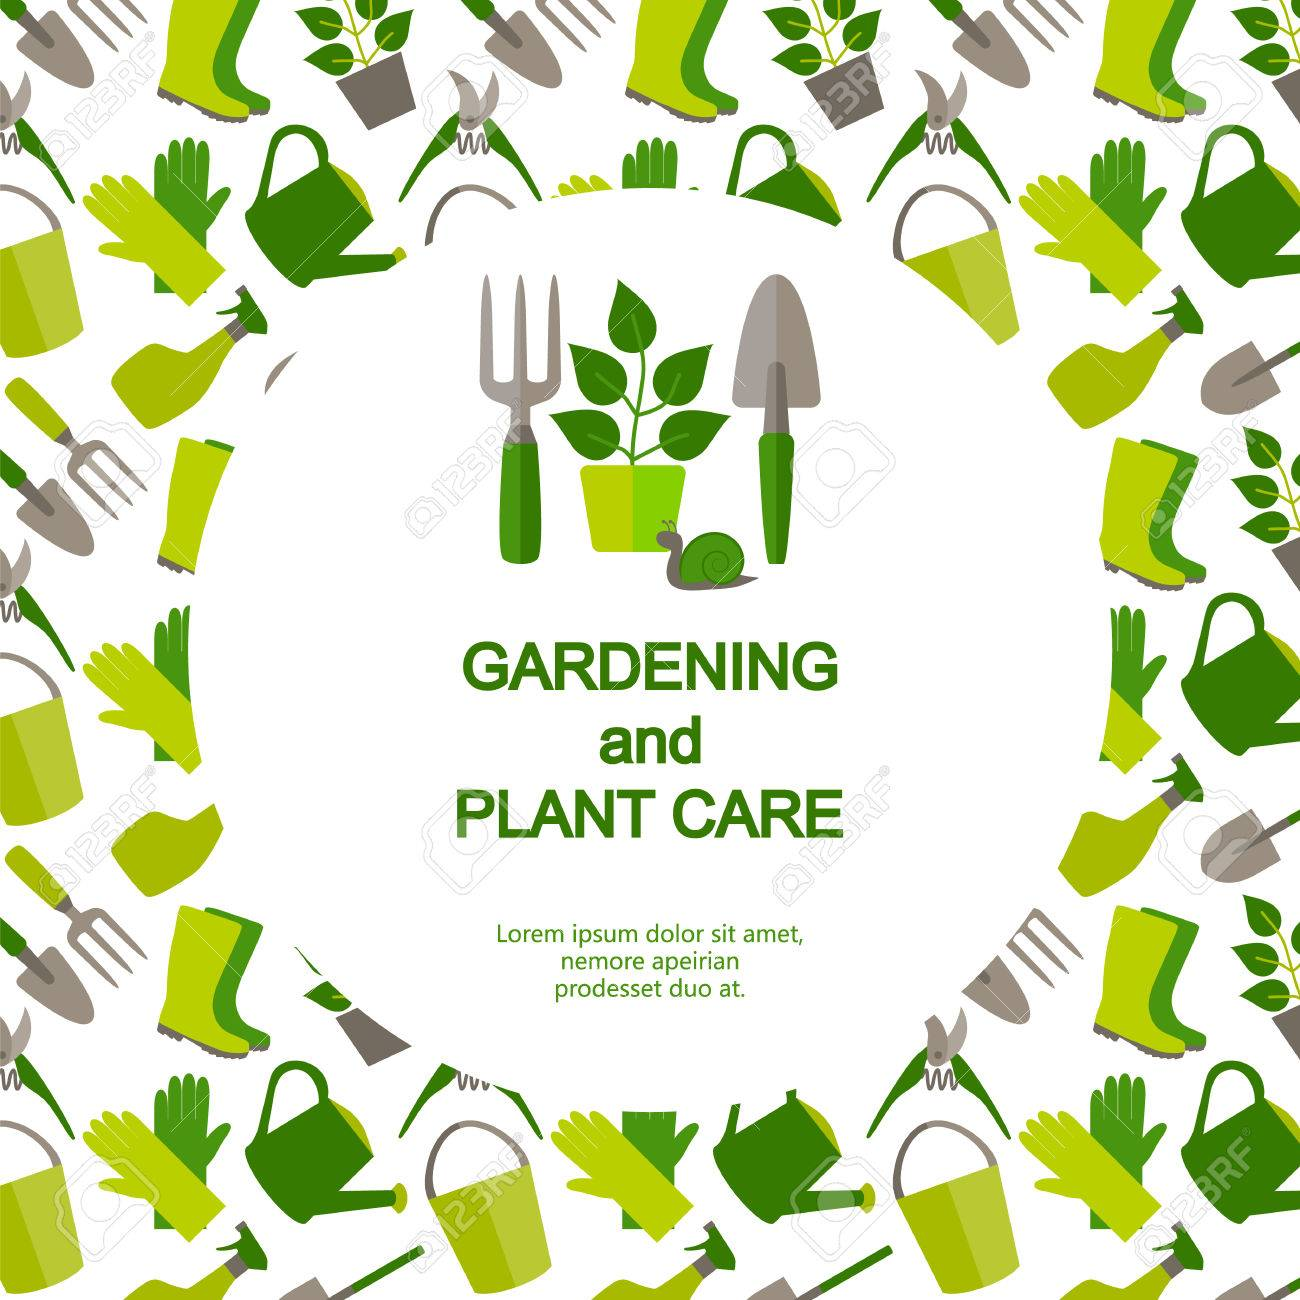 Amazing Flat Design Banner For Gardening And Horticulture With Logo Garden Tools  And Seamless Pattern. Stock